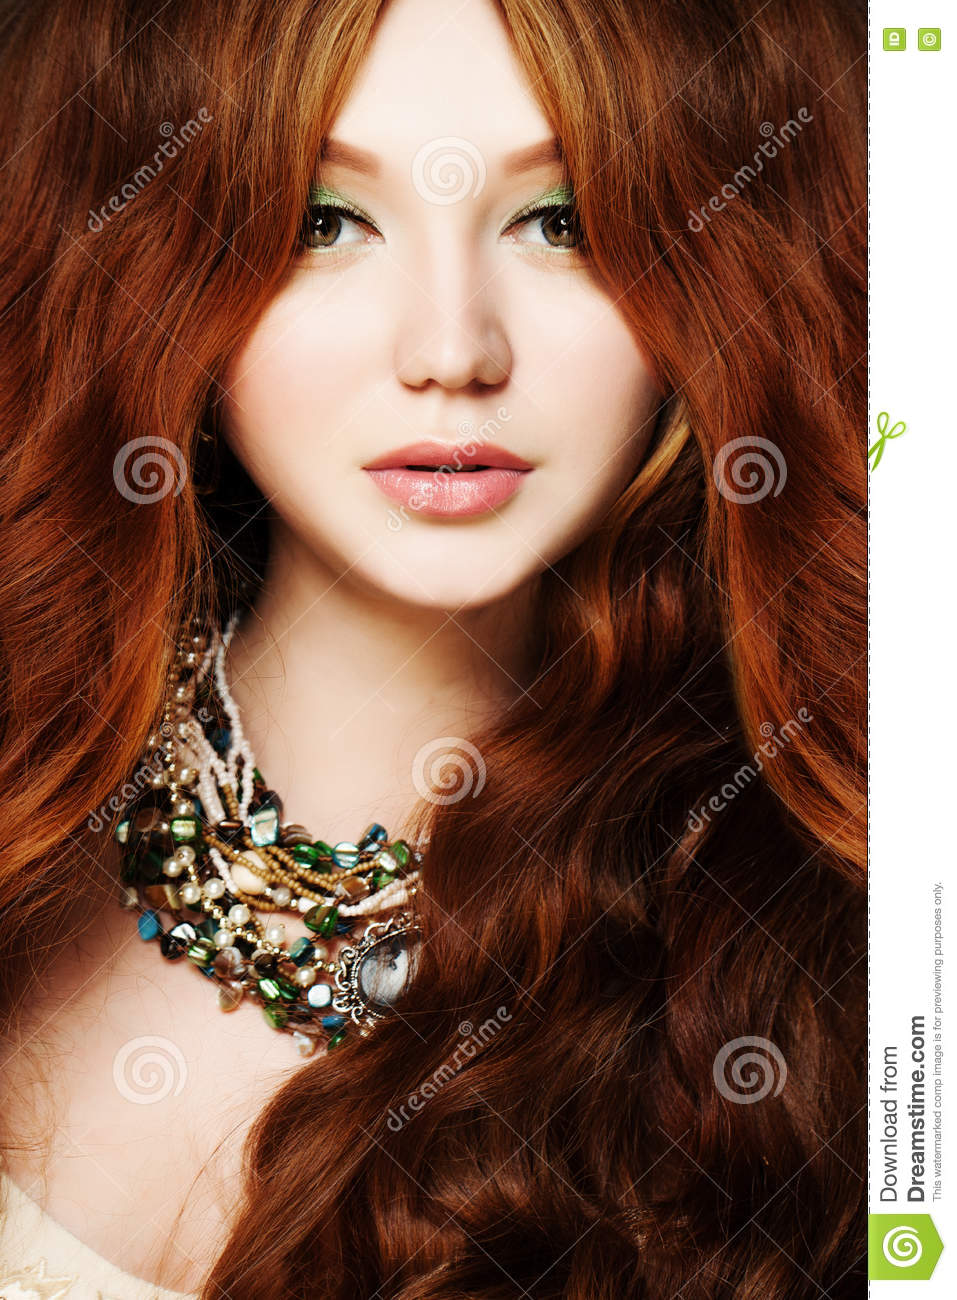 Young Woman Redhead Long Curly Hair And Makeup Stock Photo Image